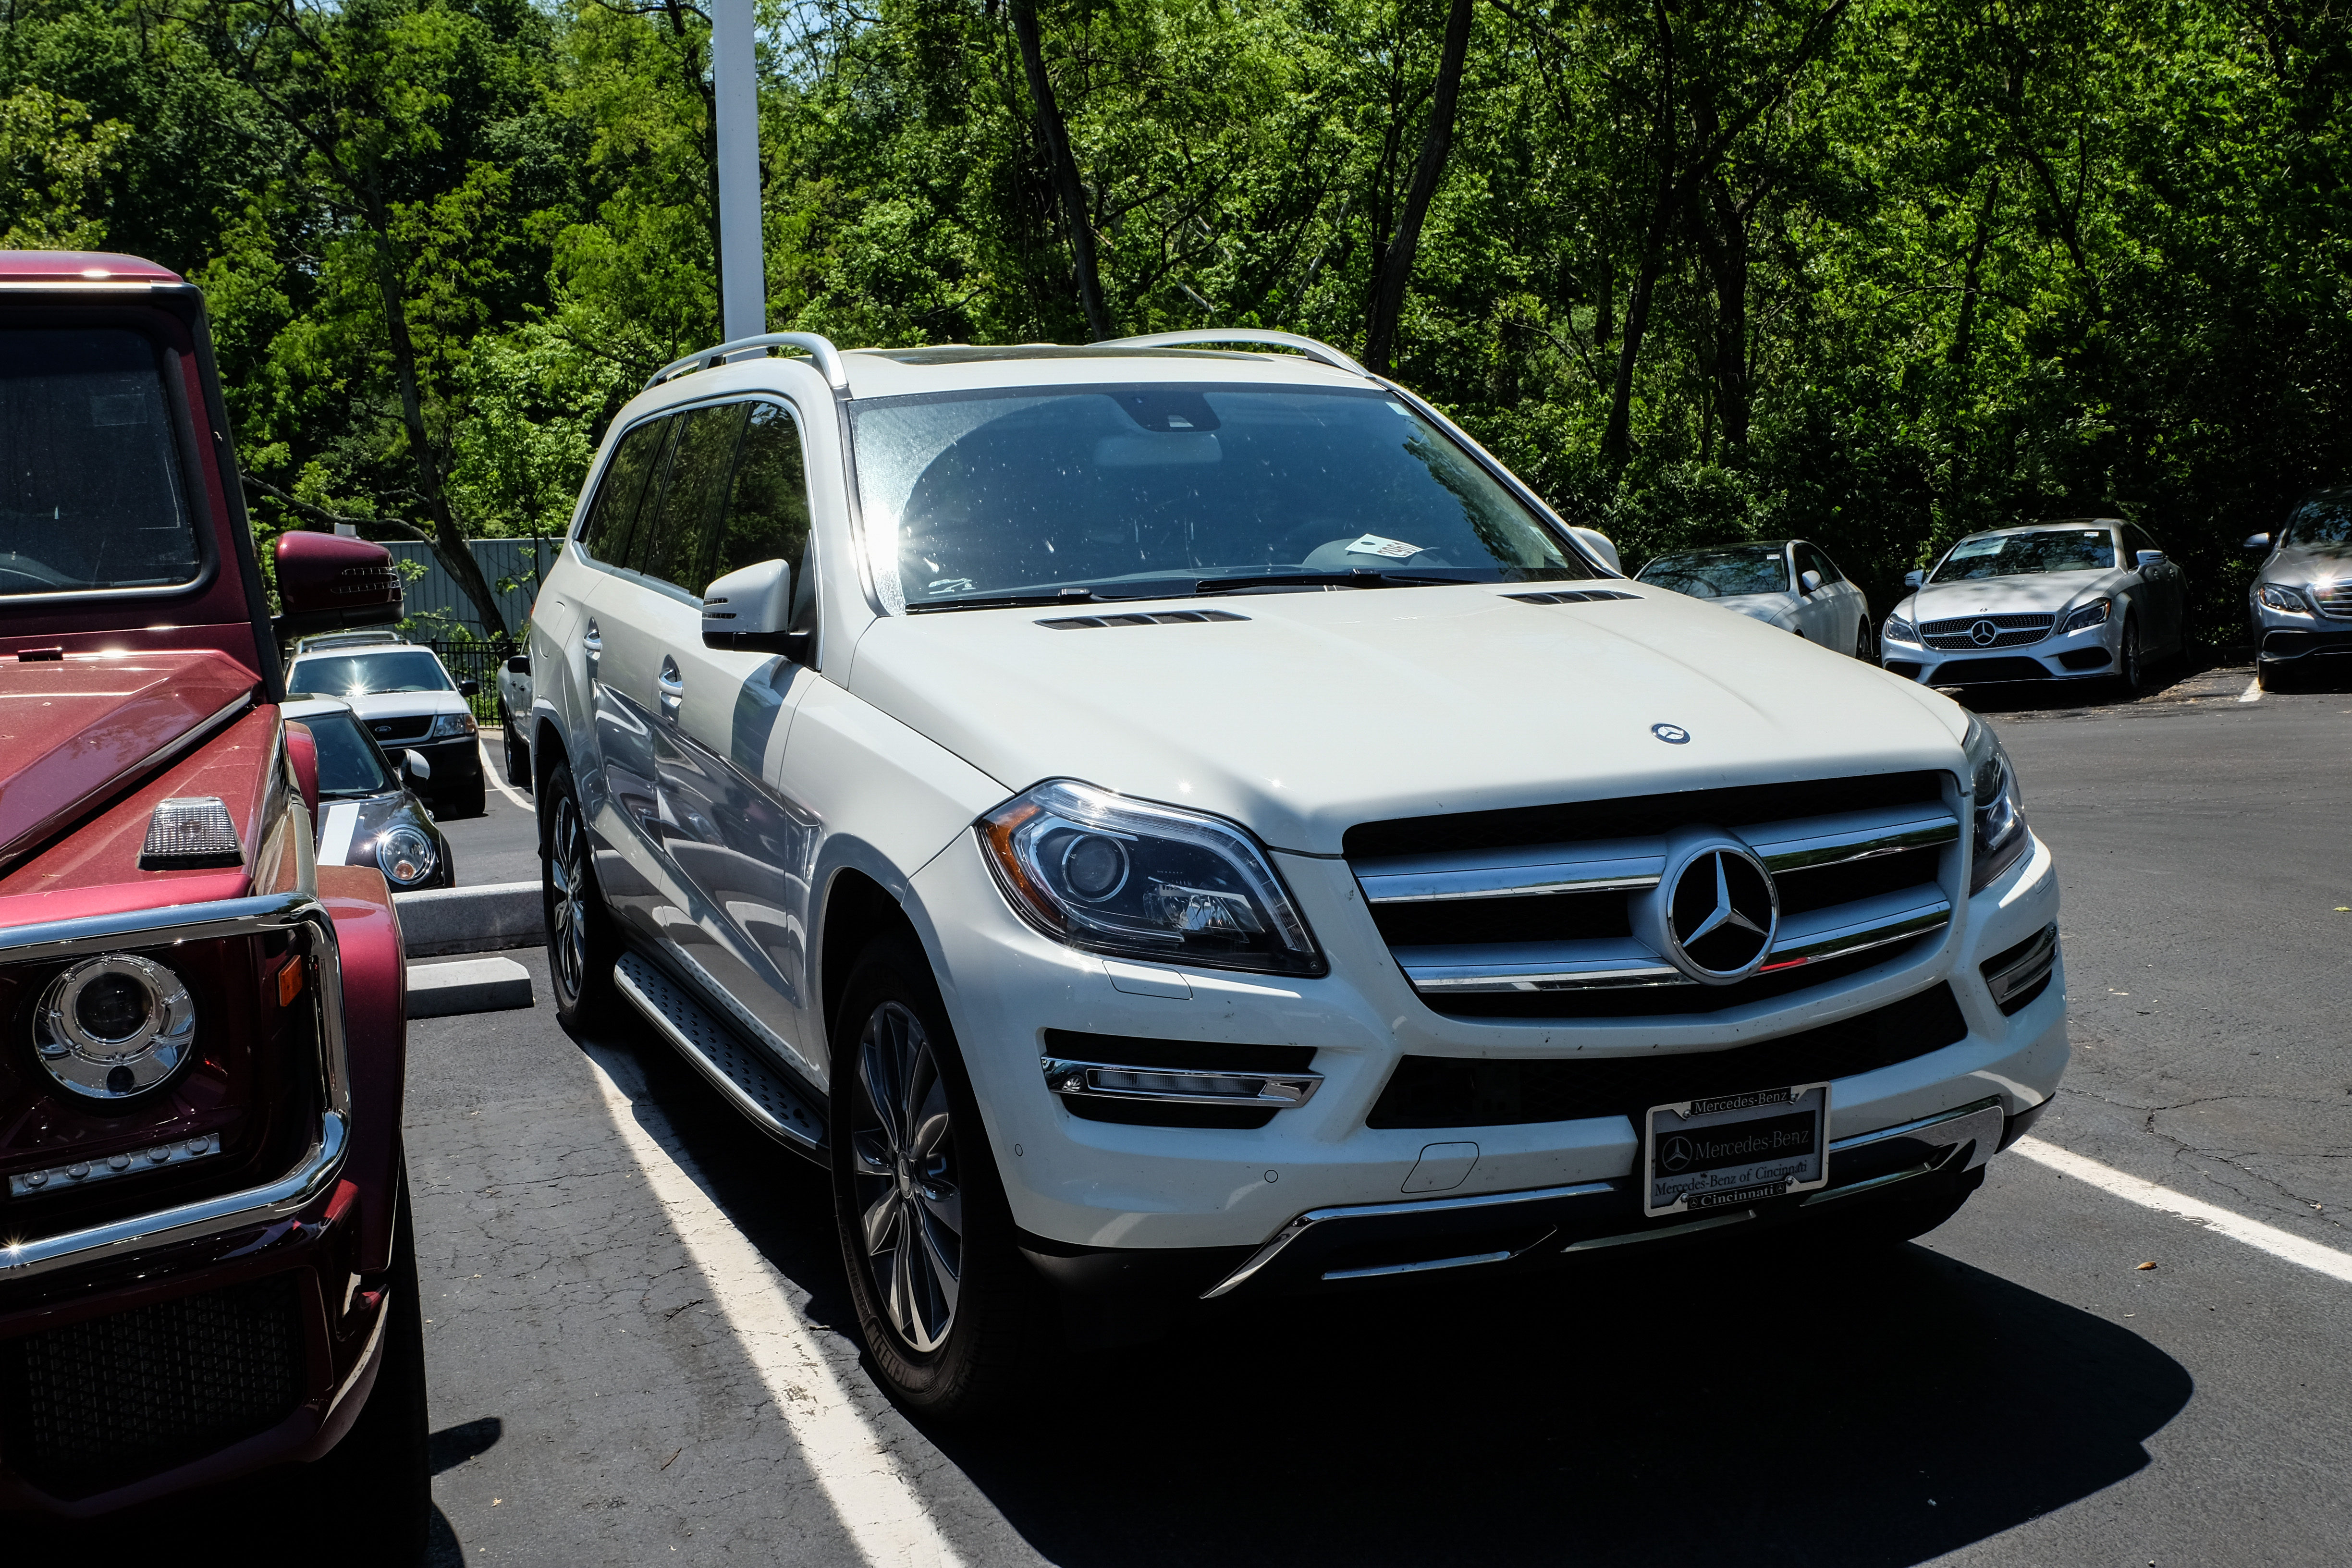 2013 2016 mercedes benz gl 450 4matic by kamaji h on for 2016 mercedes benz gl450 4matic